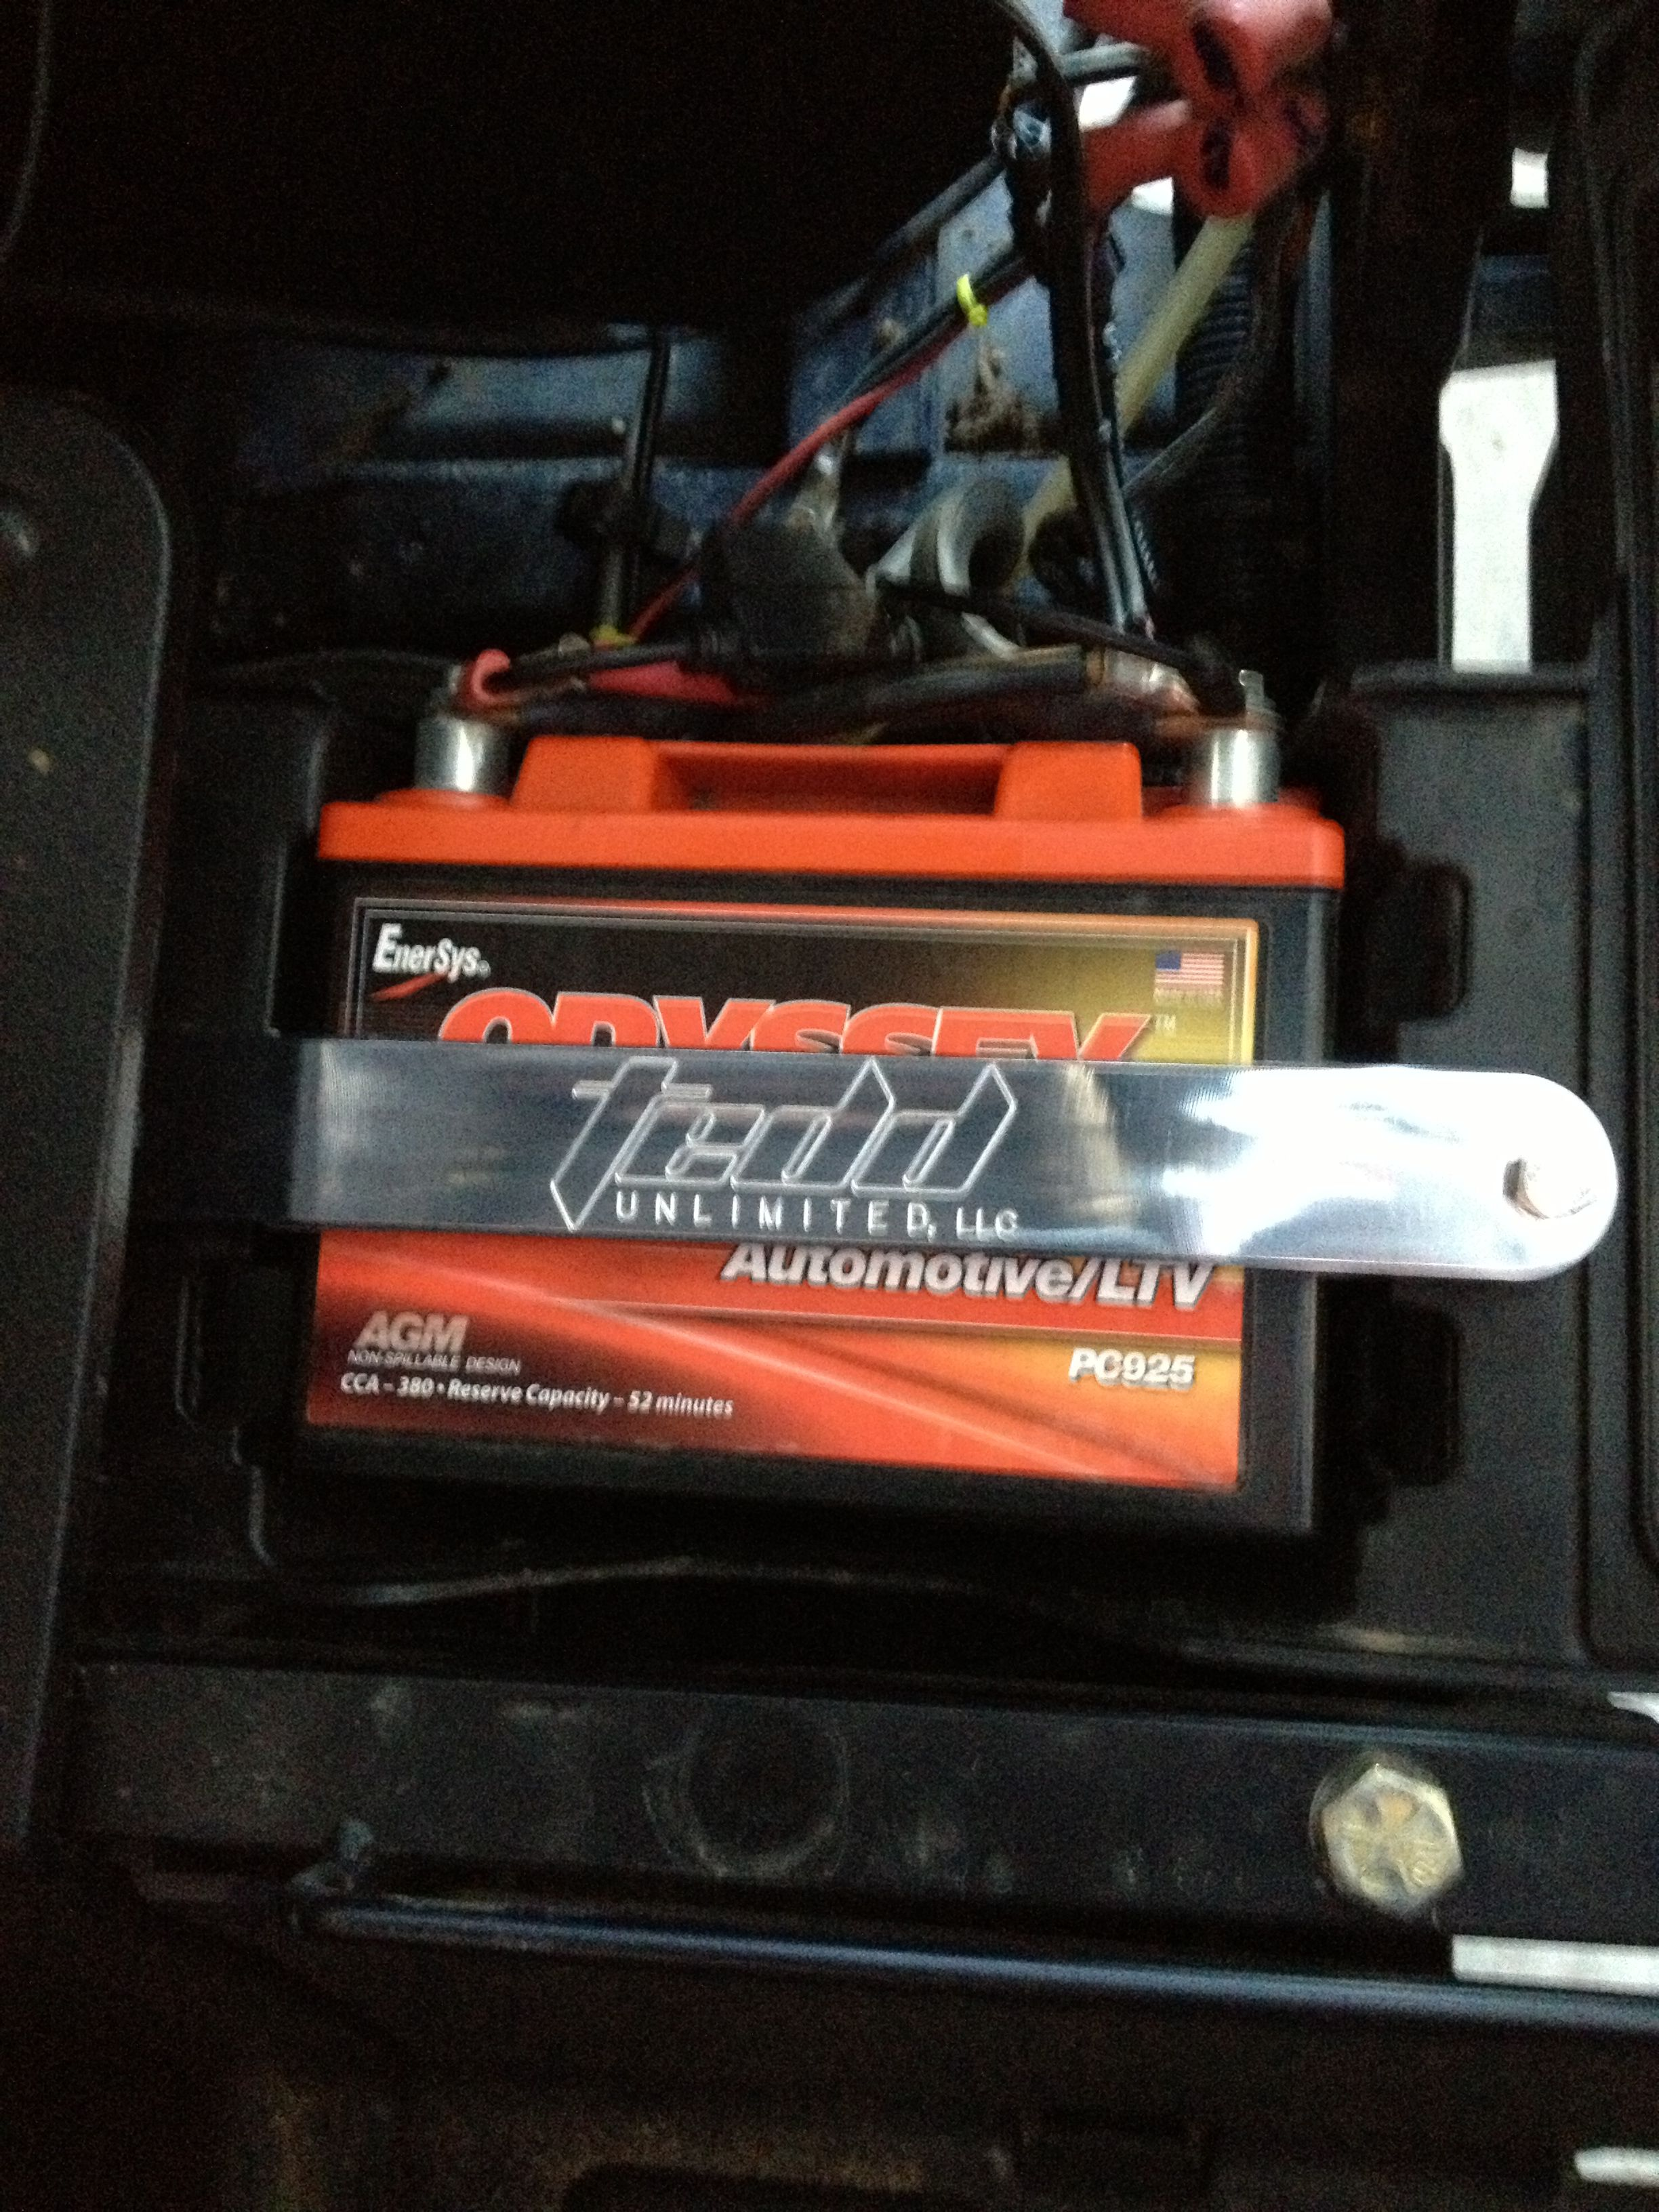 billet battery hold down for the odyssey pc925 batter shop car suitcase shopping [ 2448 x 3264 Pixel ]